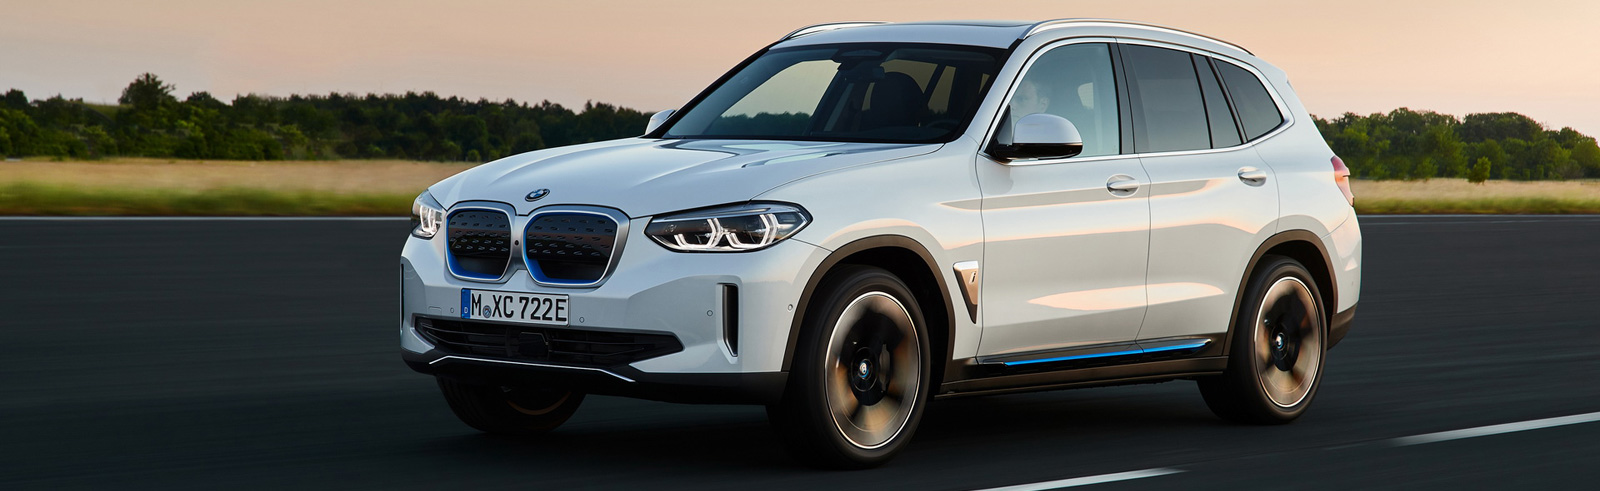 2021 Bmw Ix3 Goes Official With 460 Km Of Wltp Range 150 Kw Dc Charging Support